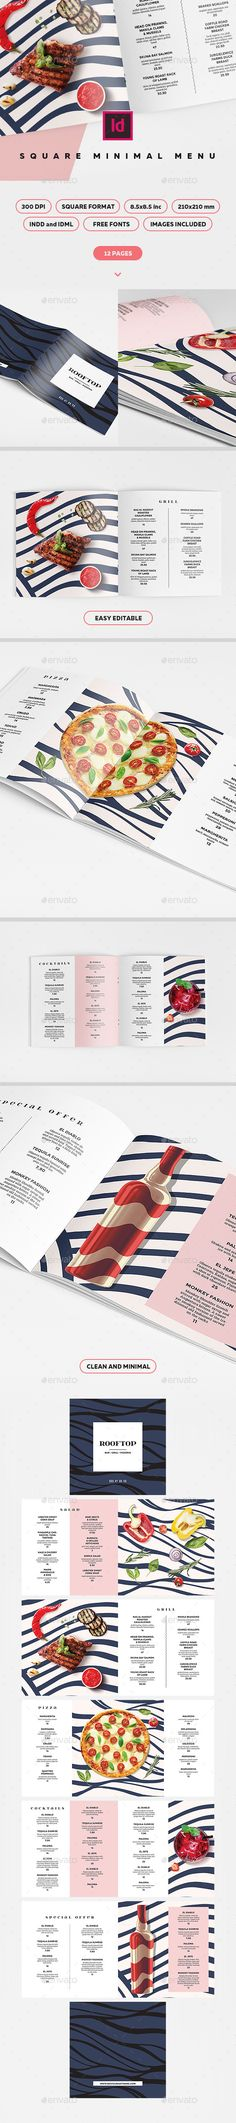 The 117 best MENUS - Templates & Restaurant Menu Ideas images on ...